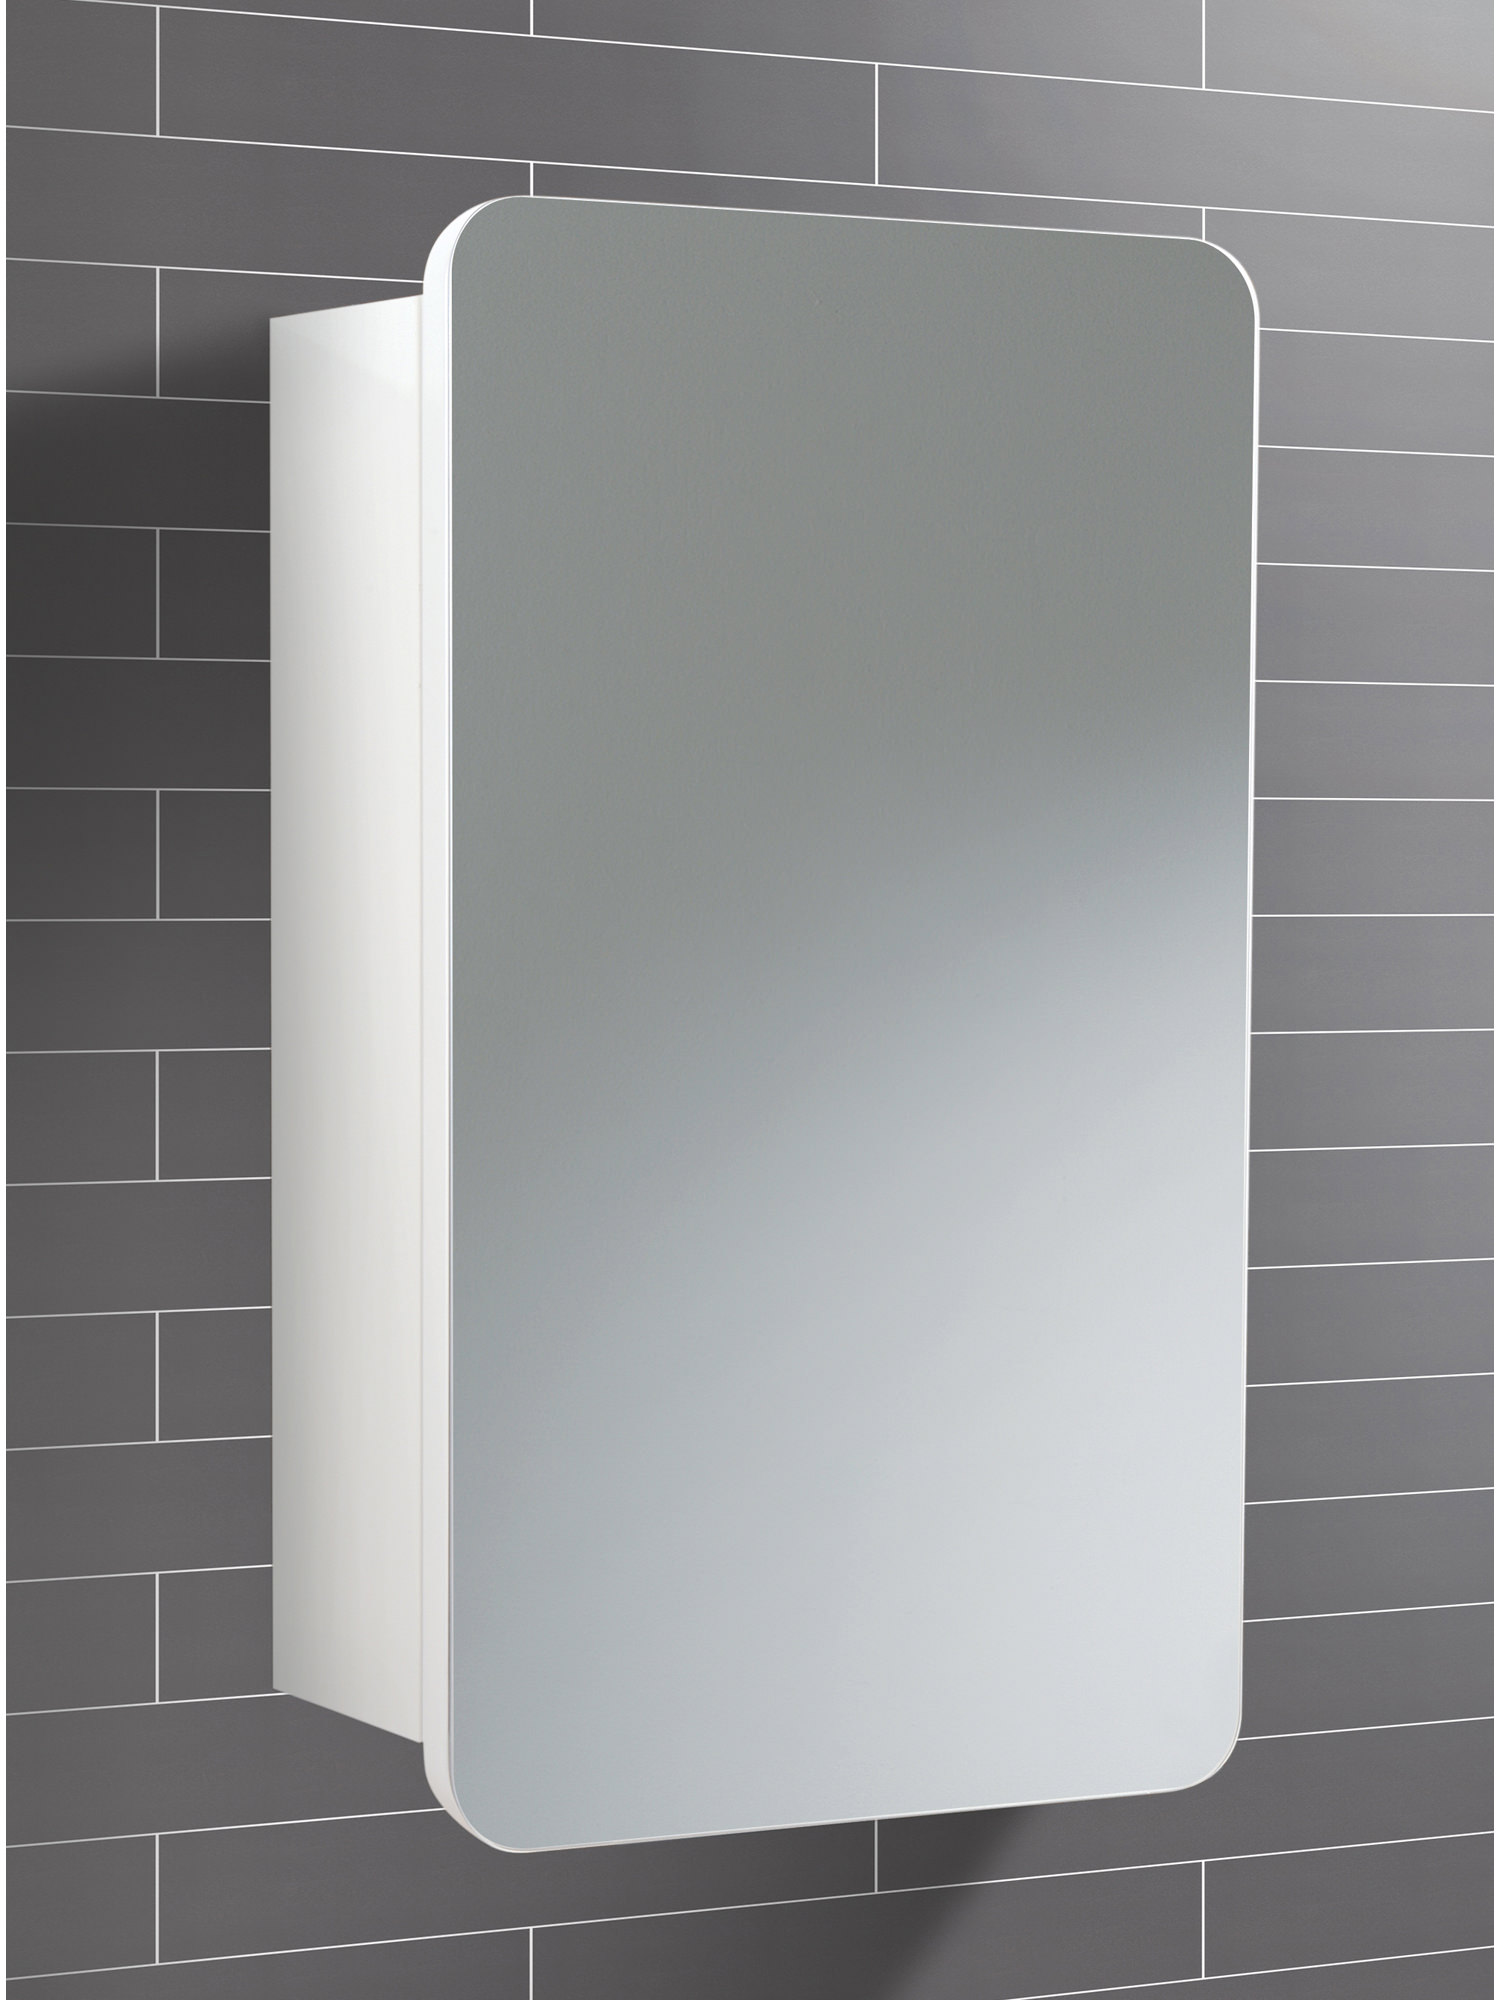 Bathroom Cabinet Mirrored Hib Montana Single Door Bathroom Mirrored Cabinet 350 X 570Mm .